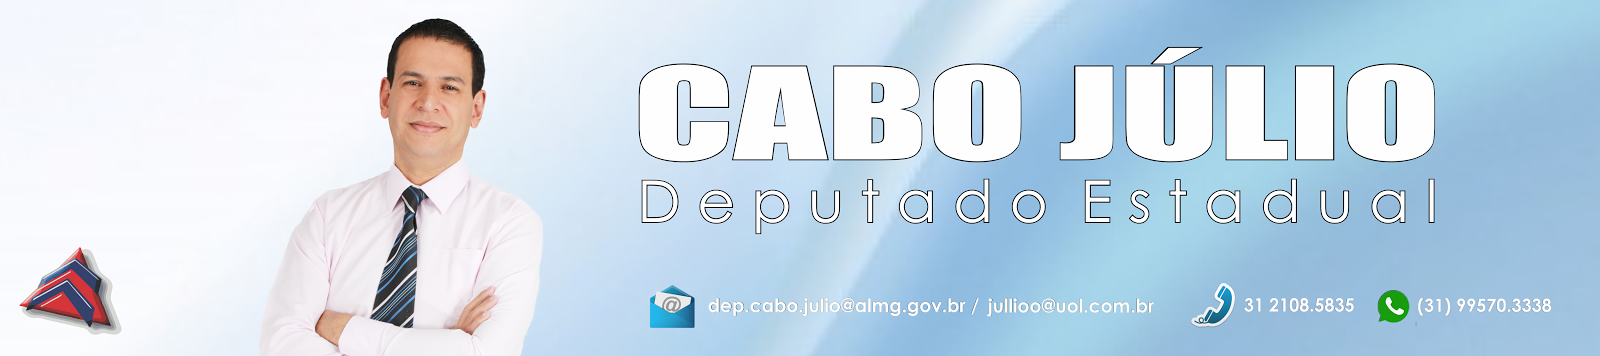 BLOG OFICIAL DO CABO JÚLIO